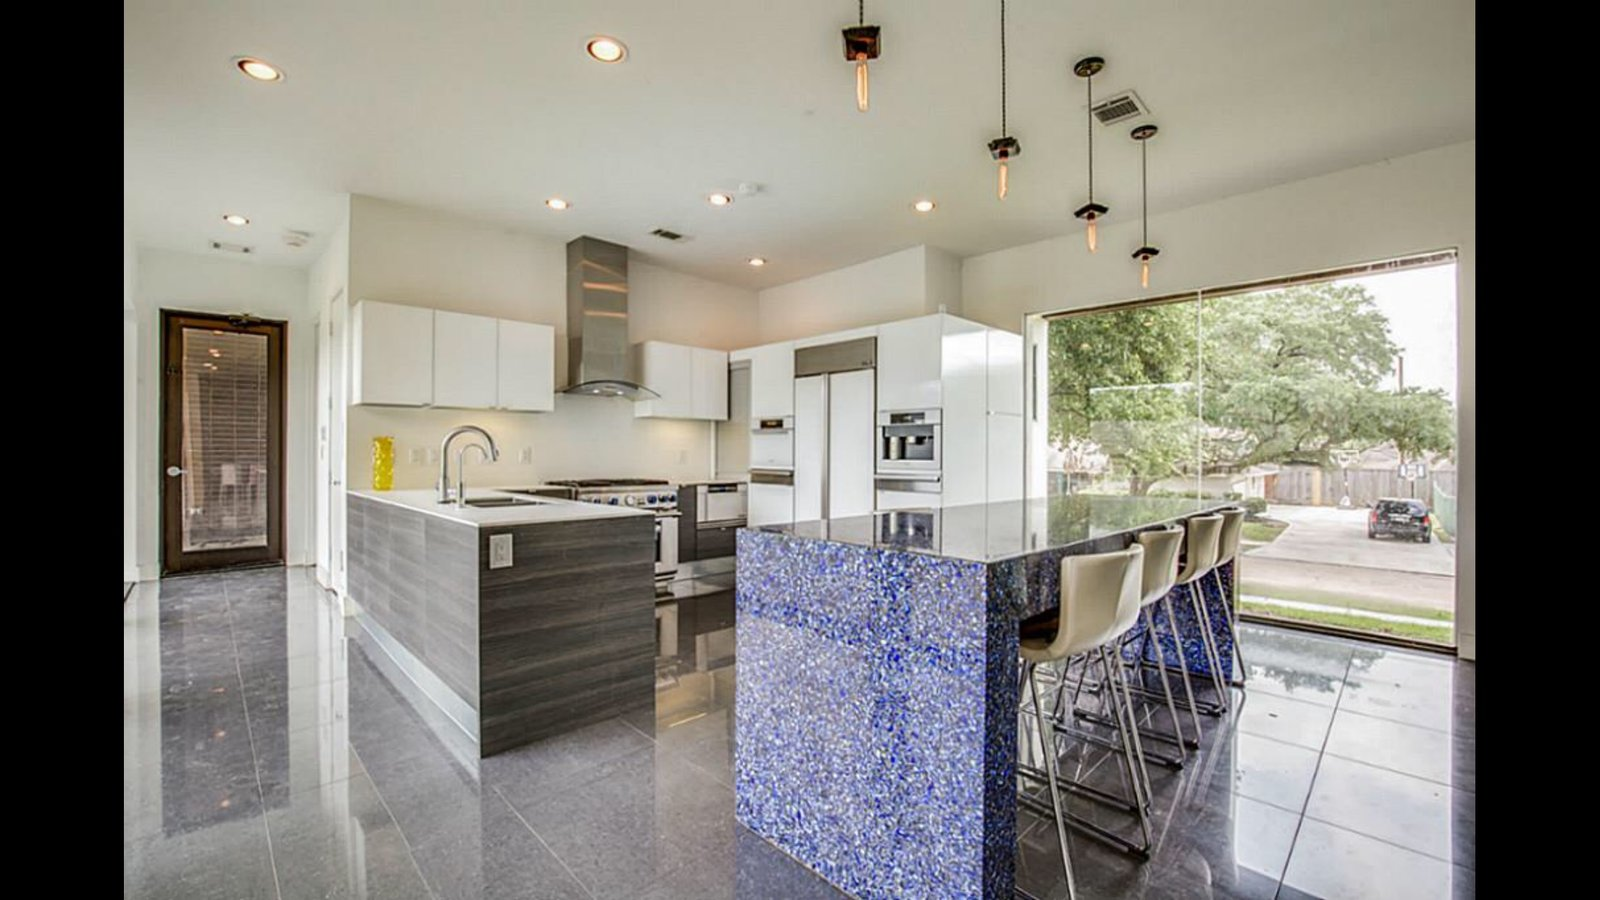 Kitchen, White Cabinet, Ceramic Tile Floor, Ceramic Tile Backsplashe, Ceiling Lighting, Refrigerator, Cooktops, Microwave, and Dishwasher Kitchen with an island of recycled sky blue vodka bottles in concrete.  The Peña Home